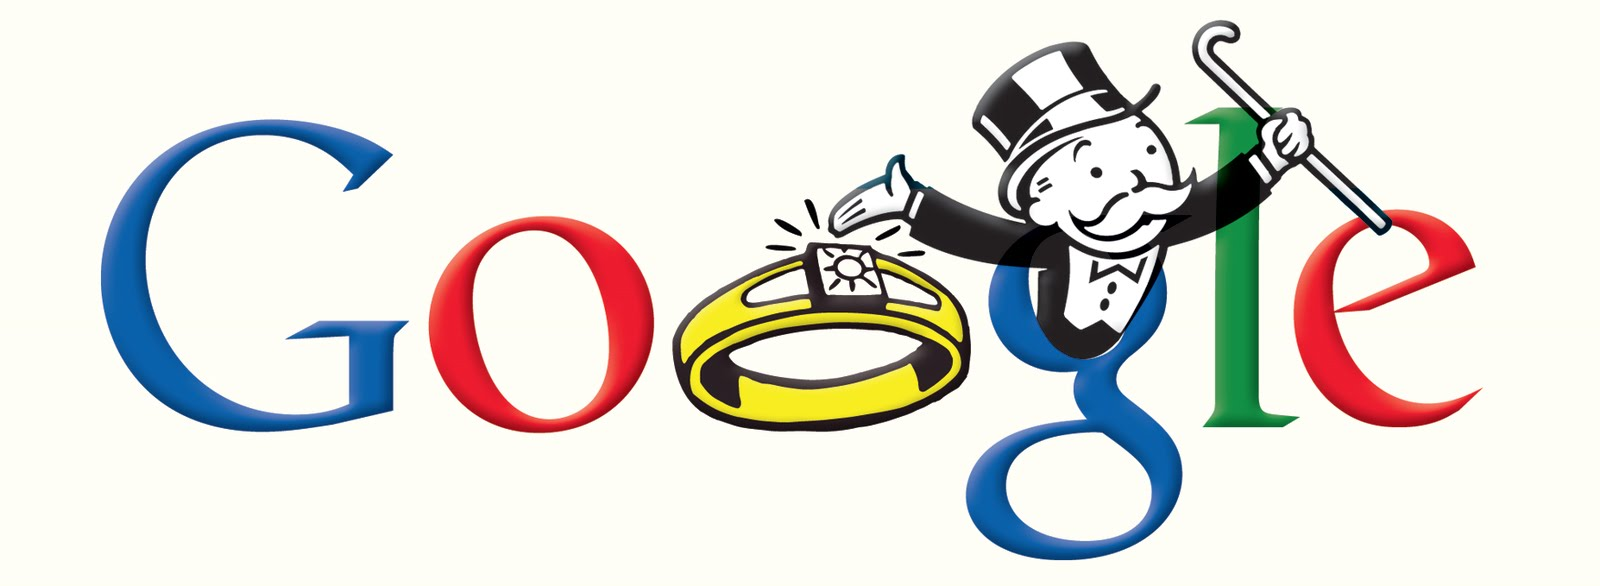 googles monopoly Google itself is afraid of competition — from giants such as amazon or from smaller start-ups, said james pethokoukis of the american enterprise institute.